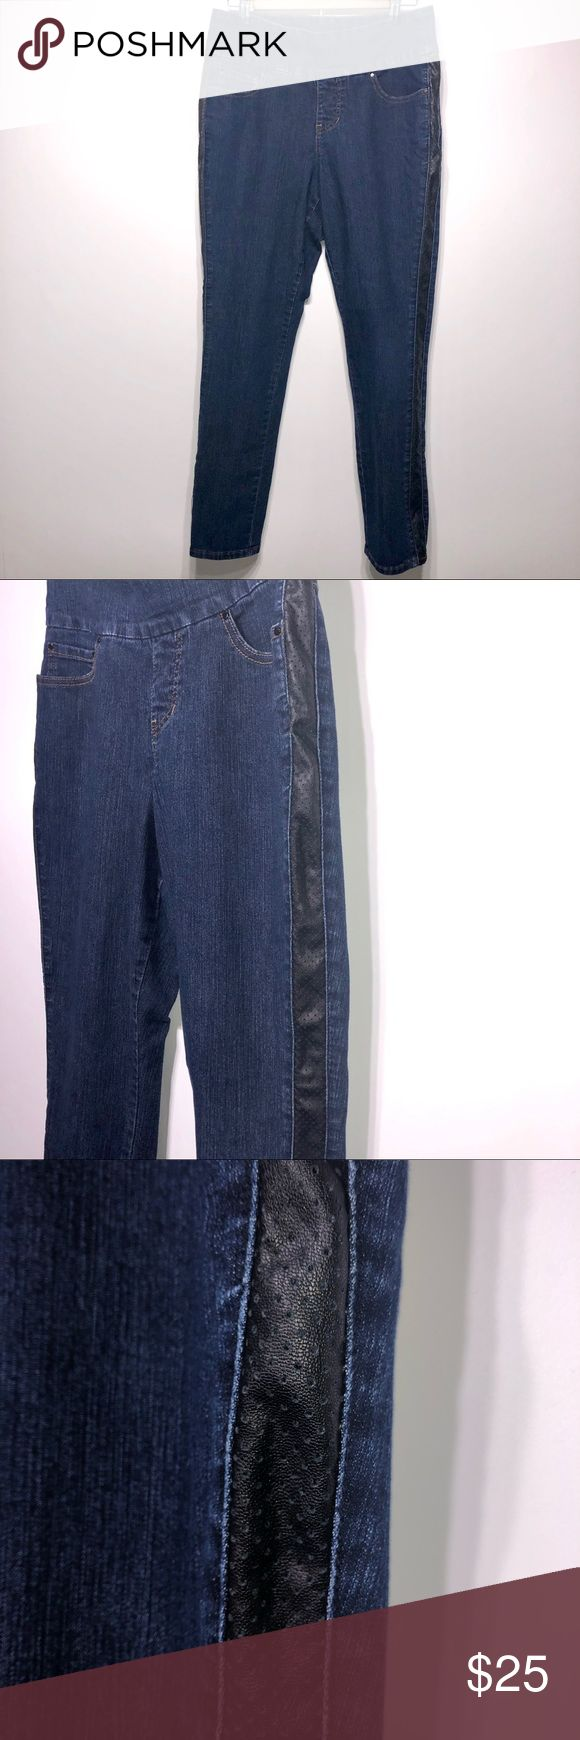 Jag Jeans Pull-On Tummy Control Size 10 Excellent …